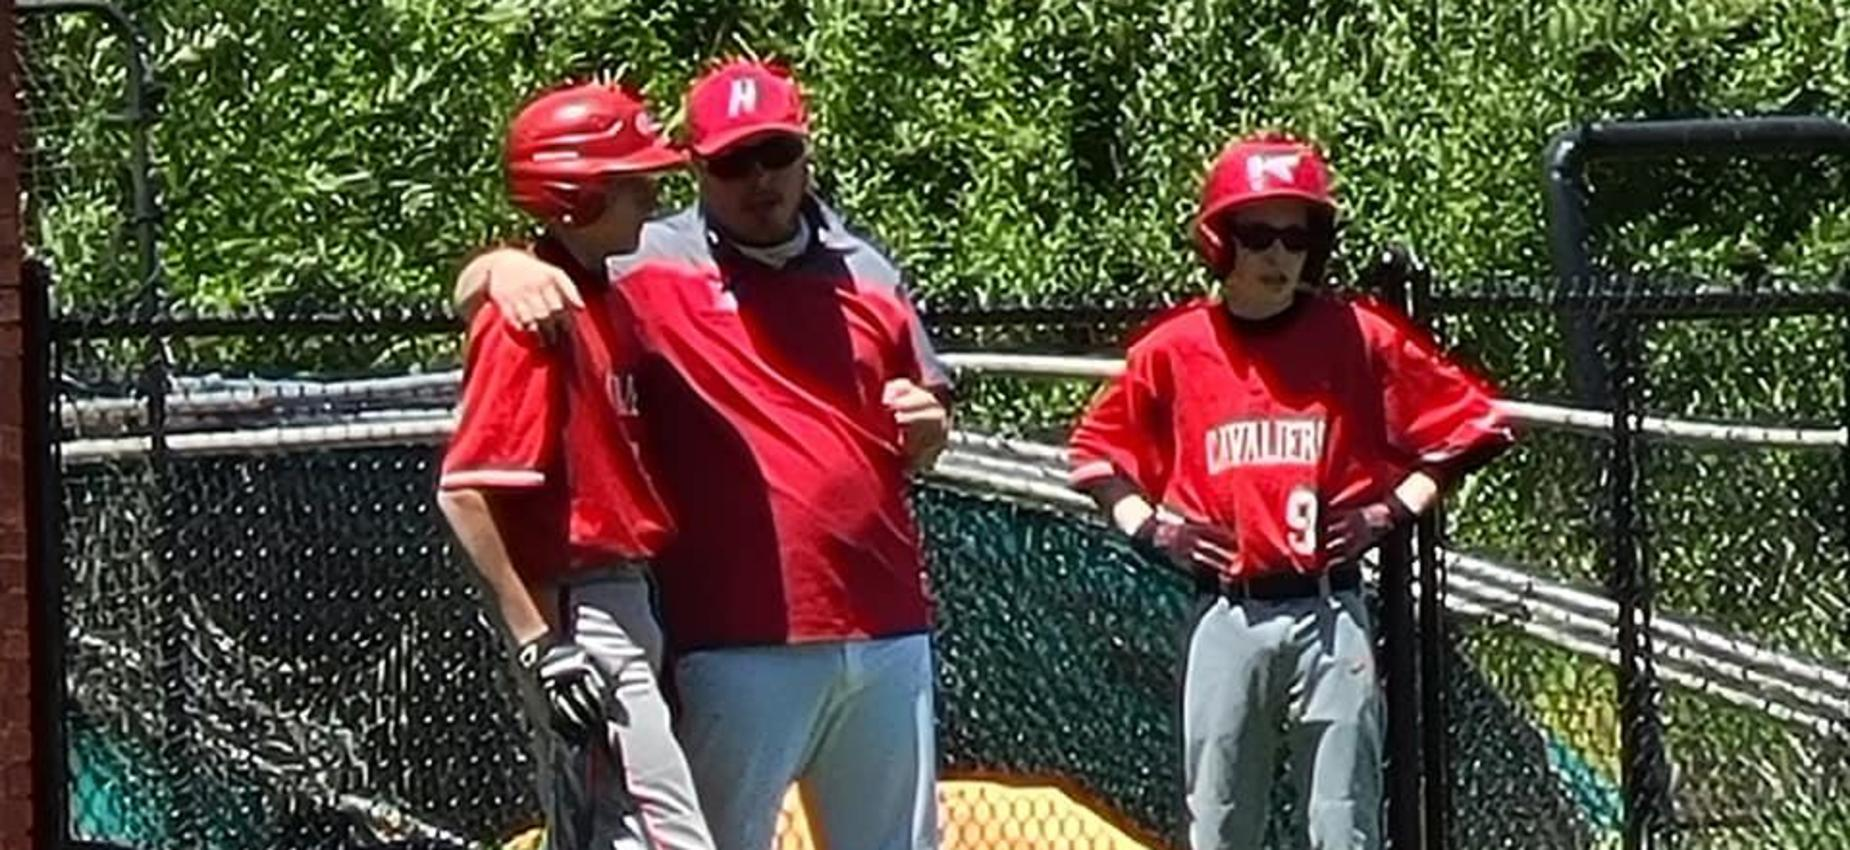 A coach talks to two baseball players during a game.